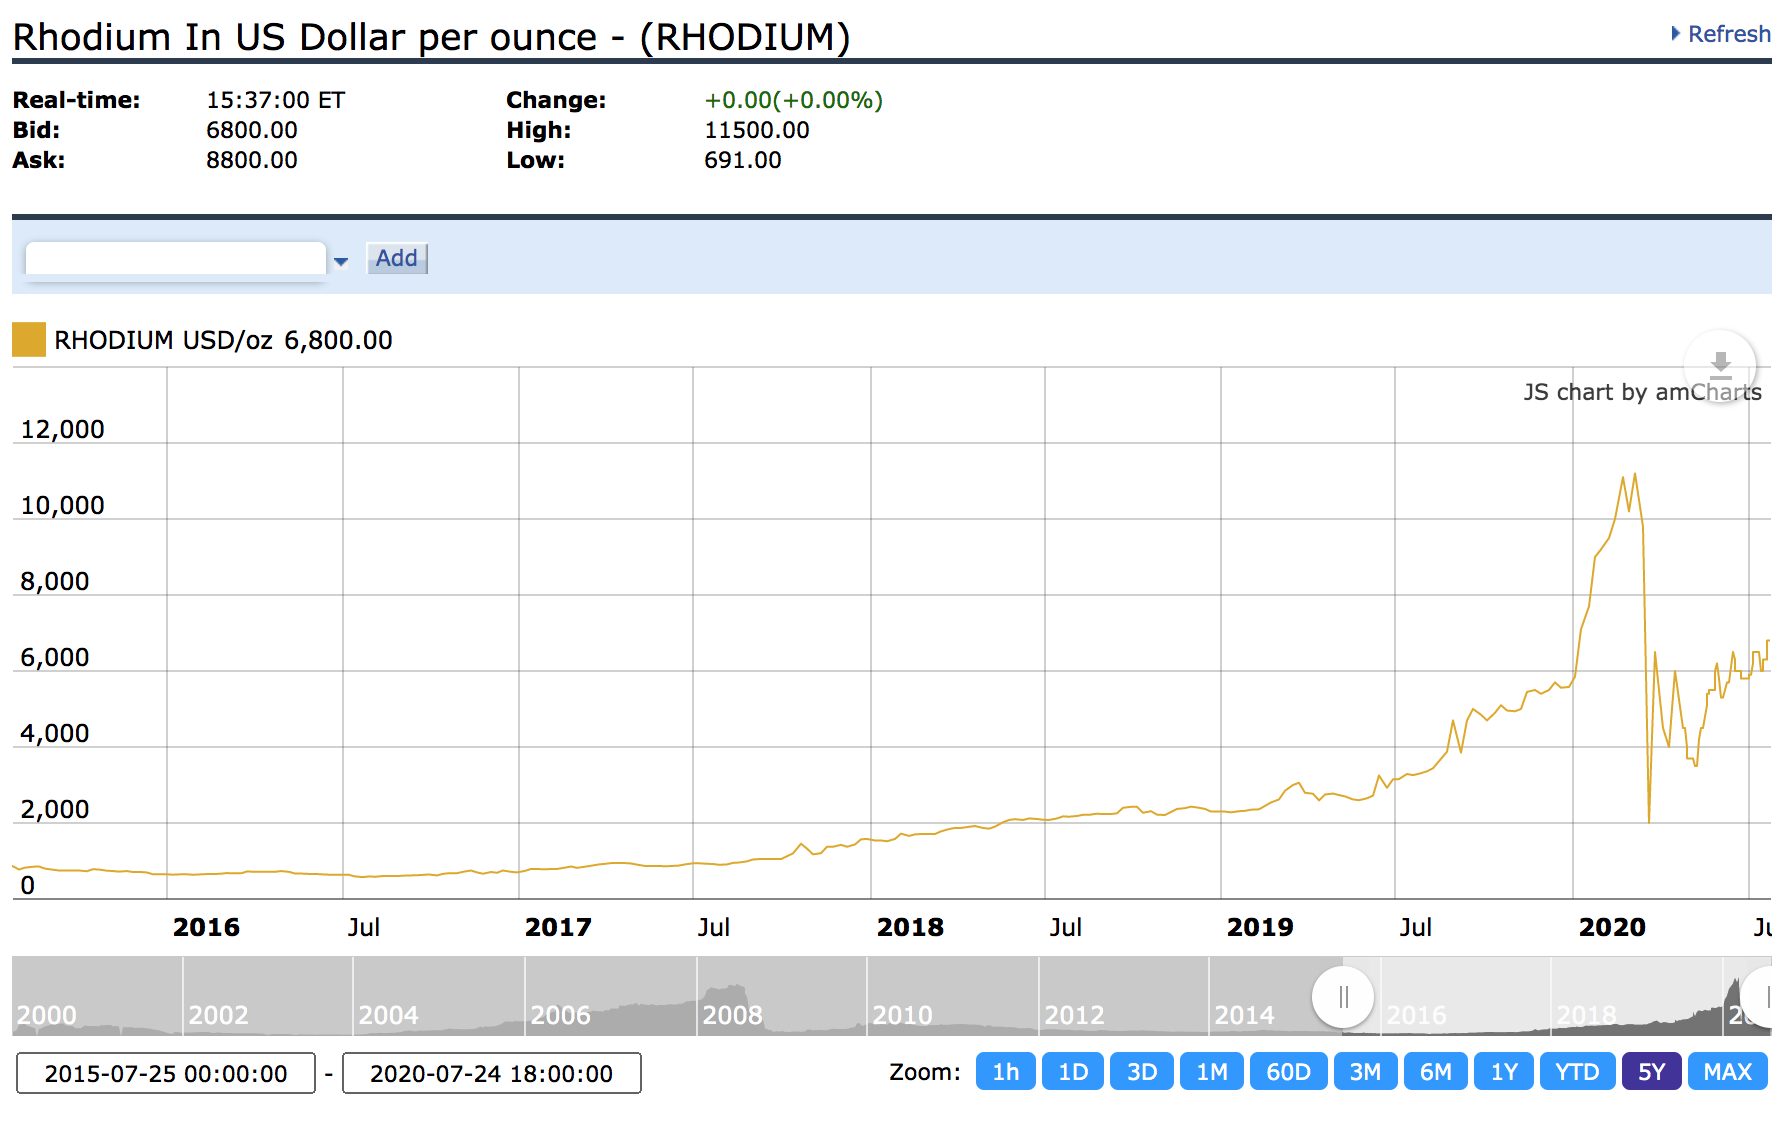 Rhodium in USD